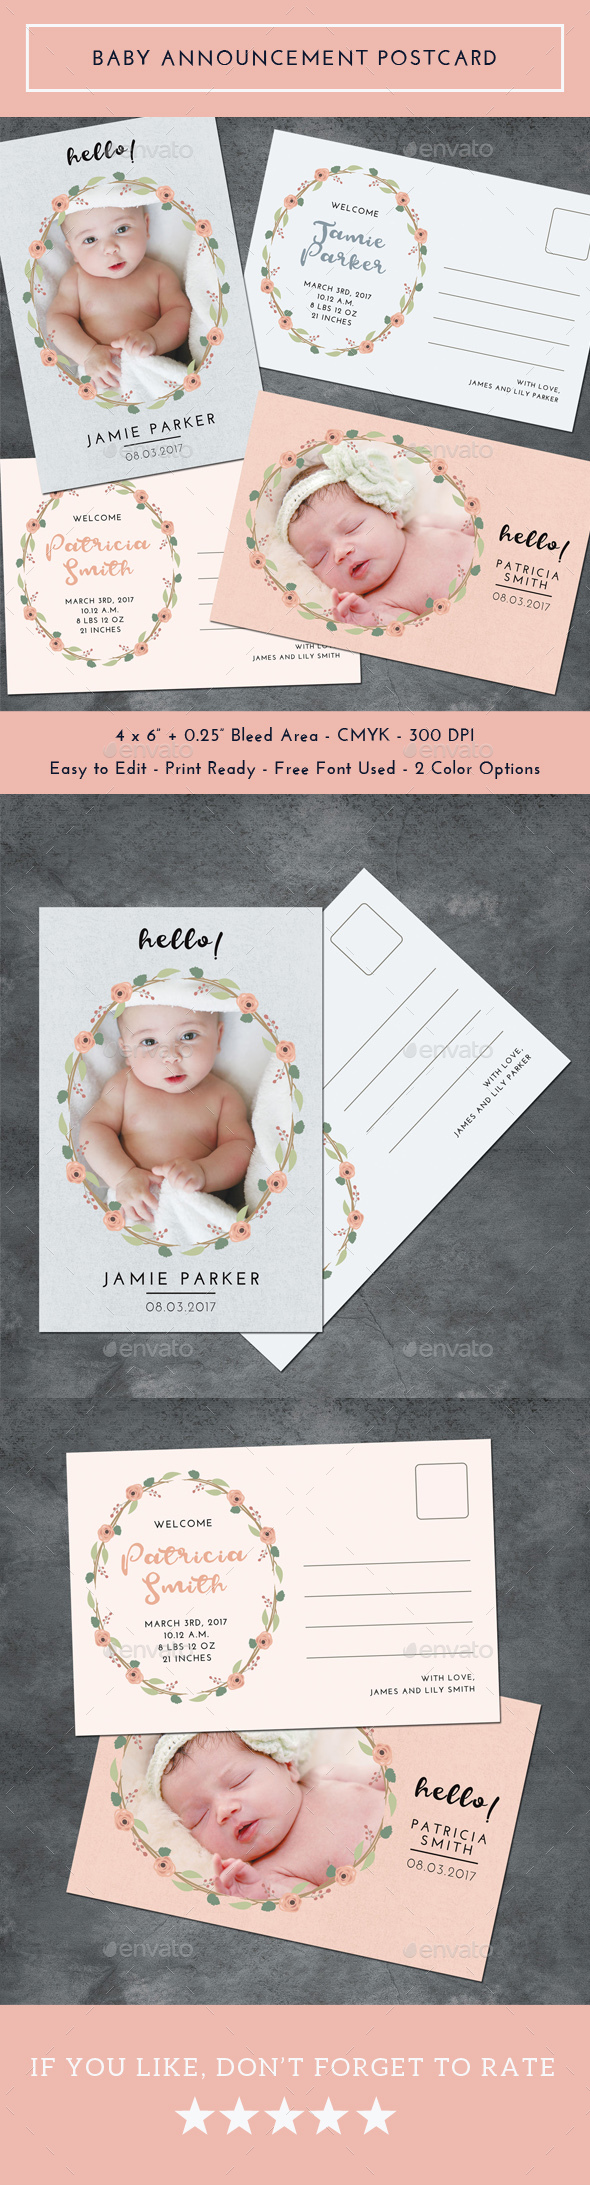 Baby Announcement Postcard - Cards & Invites Print Templates